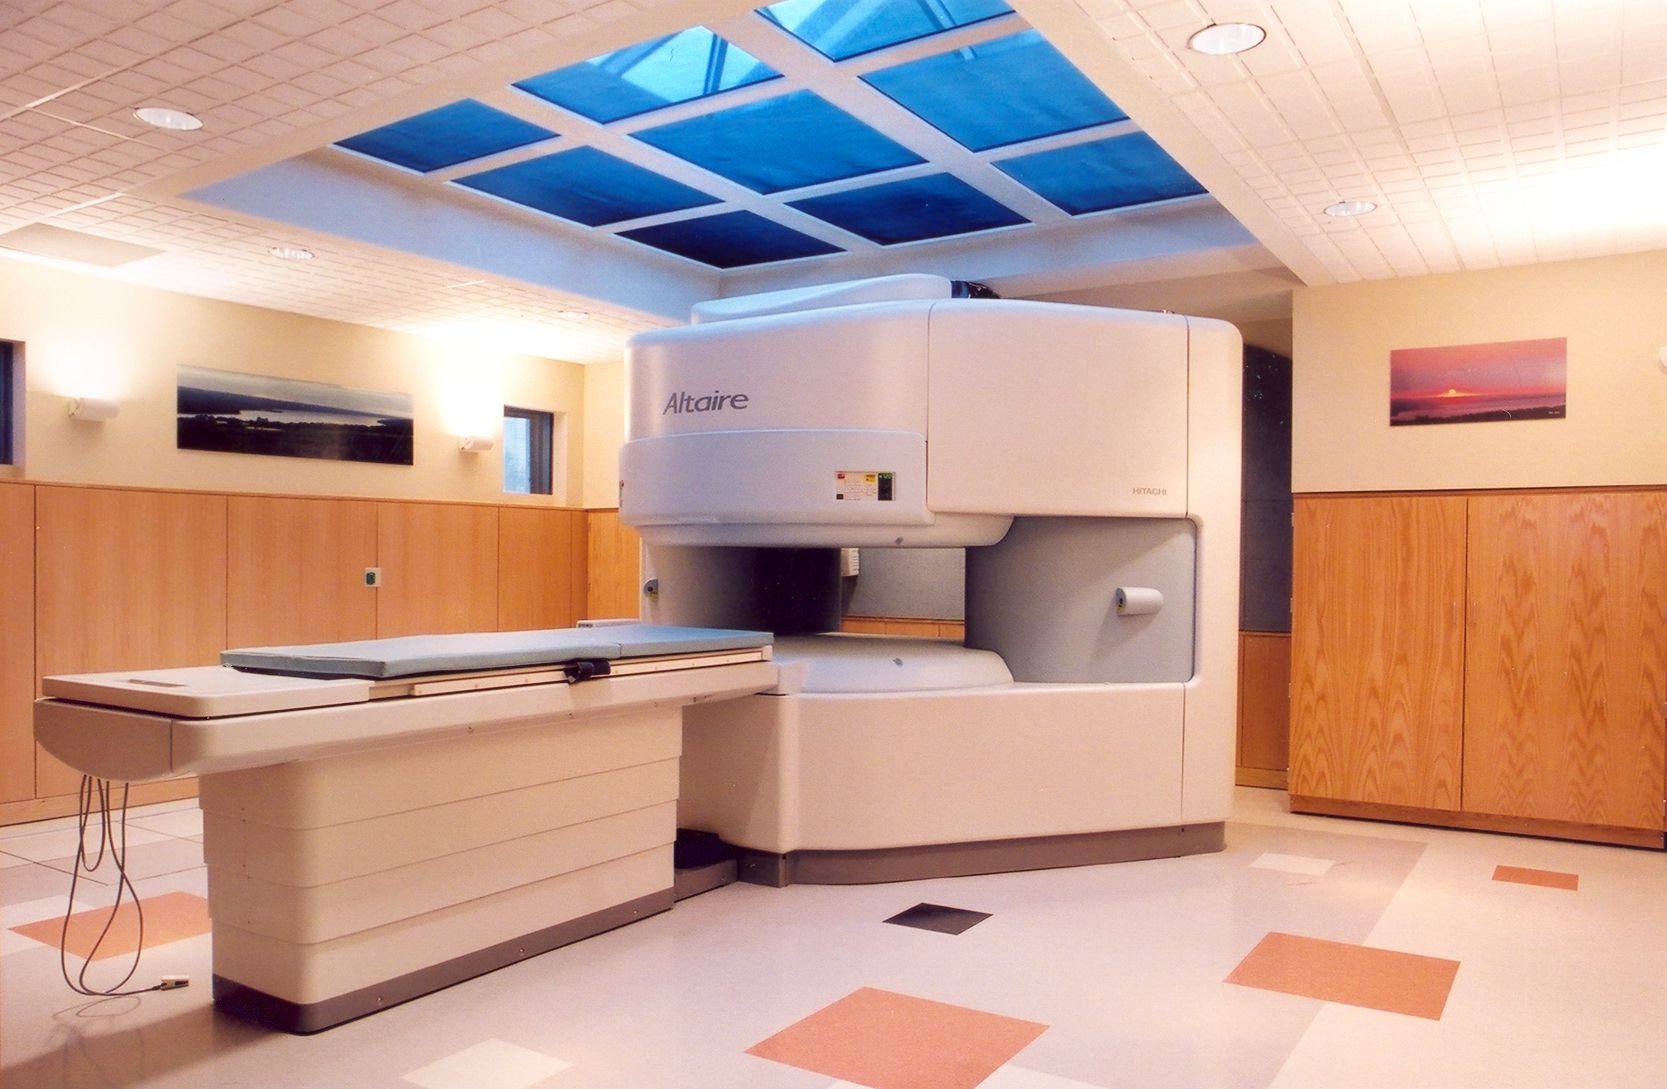 The cayuga medical center east campus includes imaging